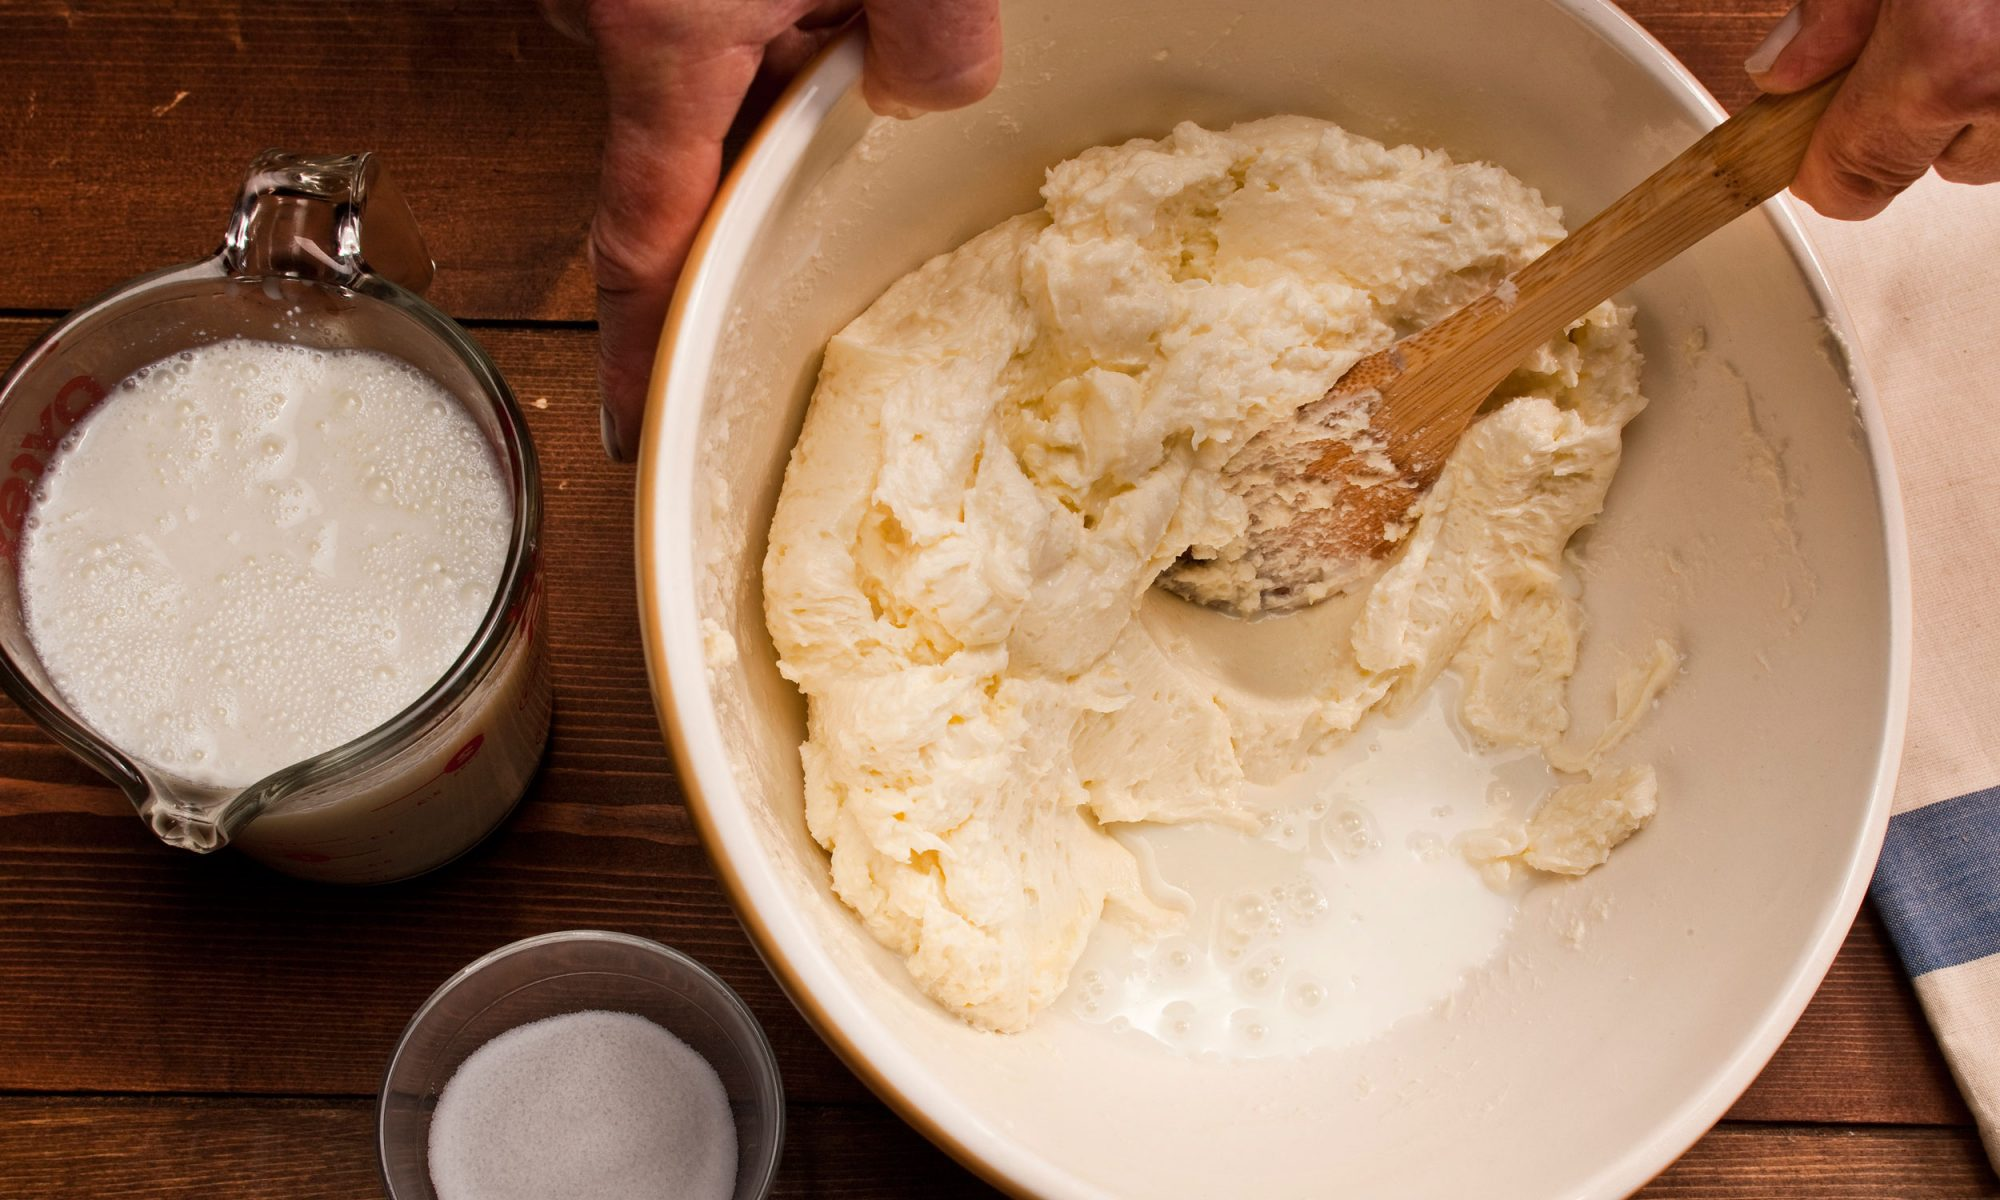 EC: How to Use Up Extra Buttermilk